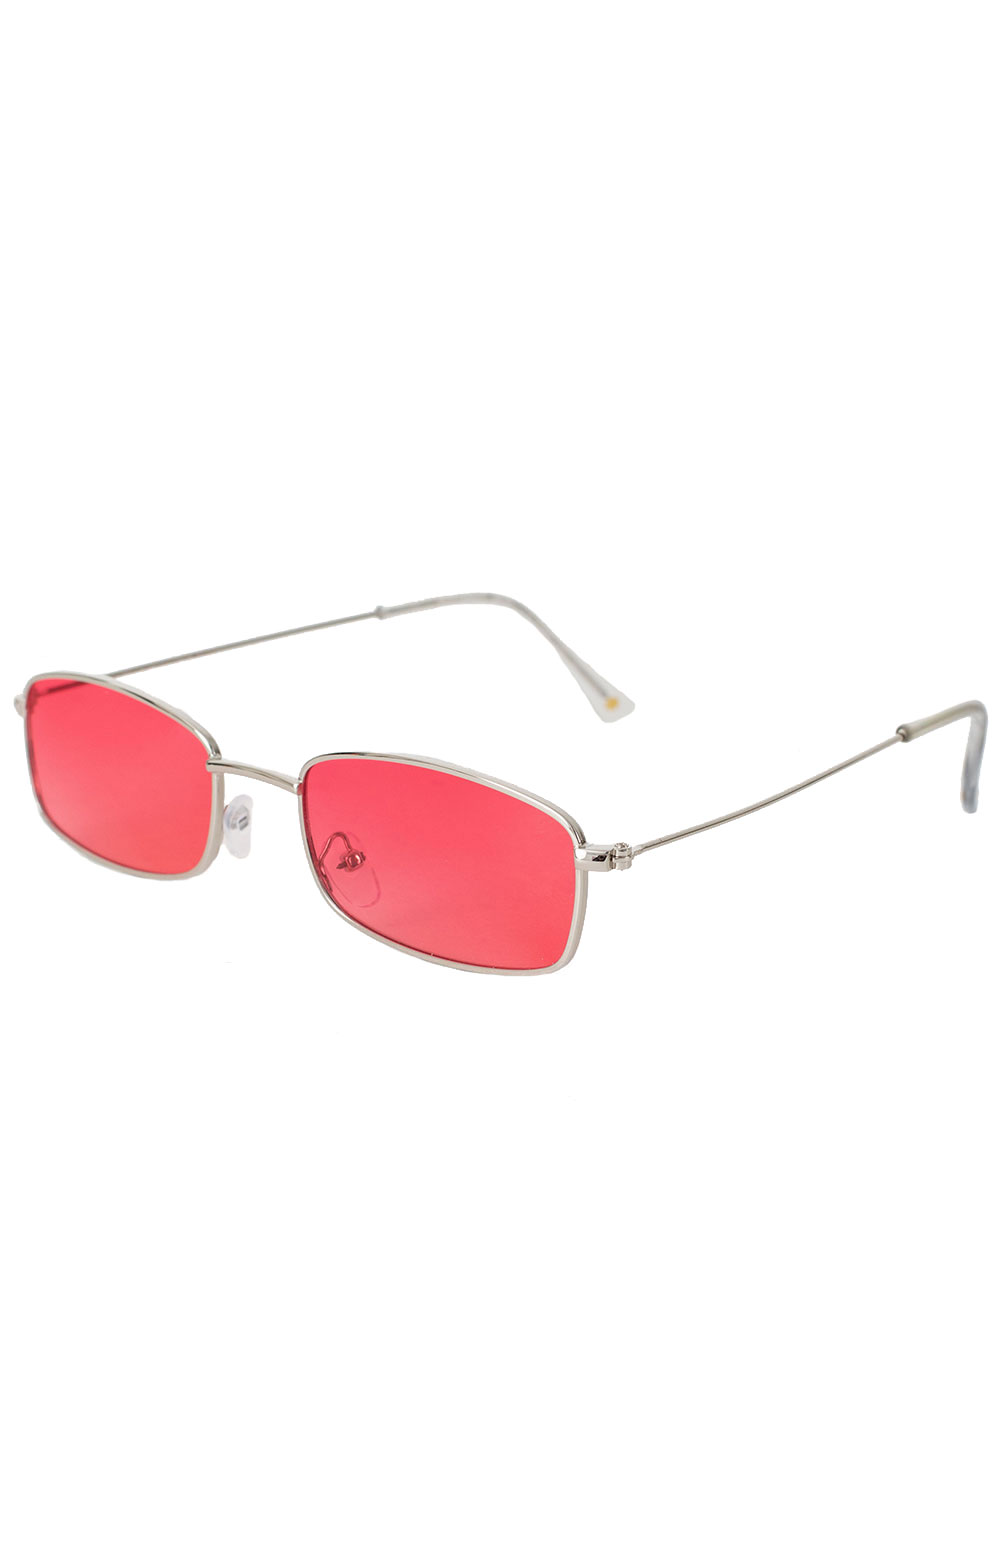 Rae Polarized Sunglasses - Silver/Pink Mirror